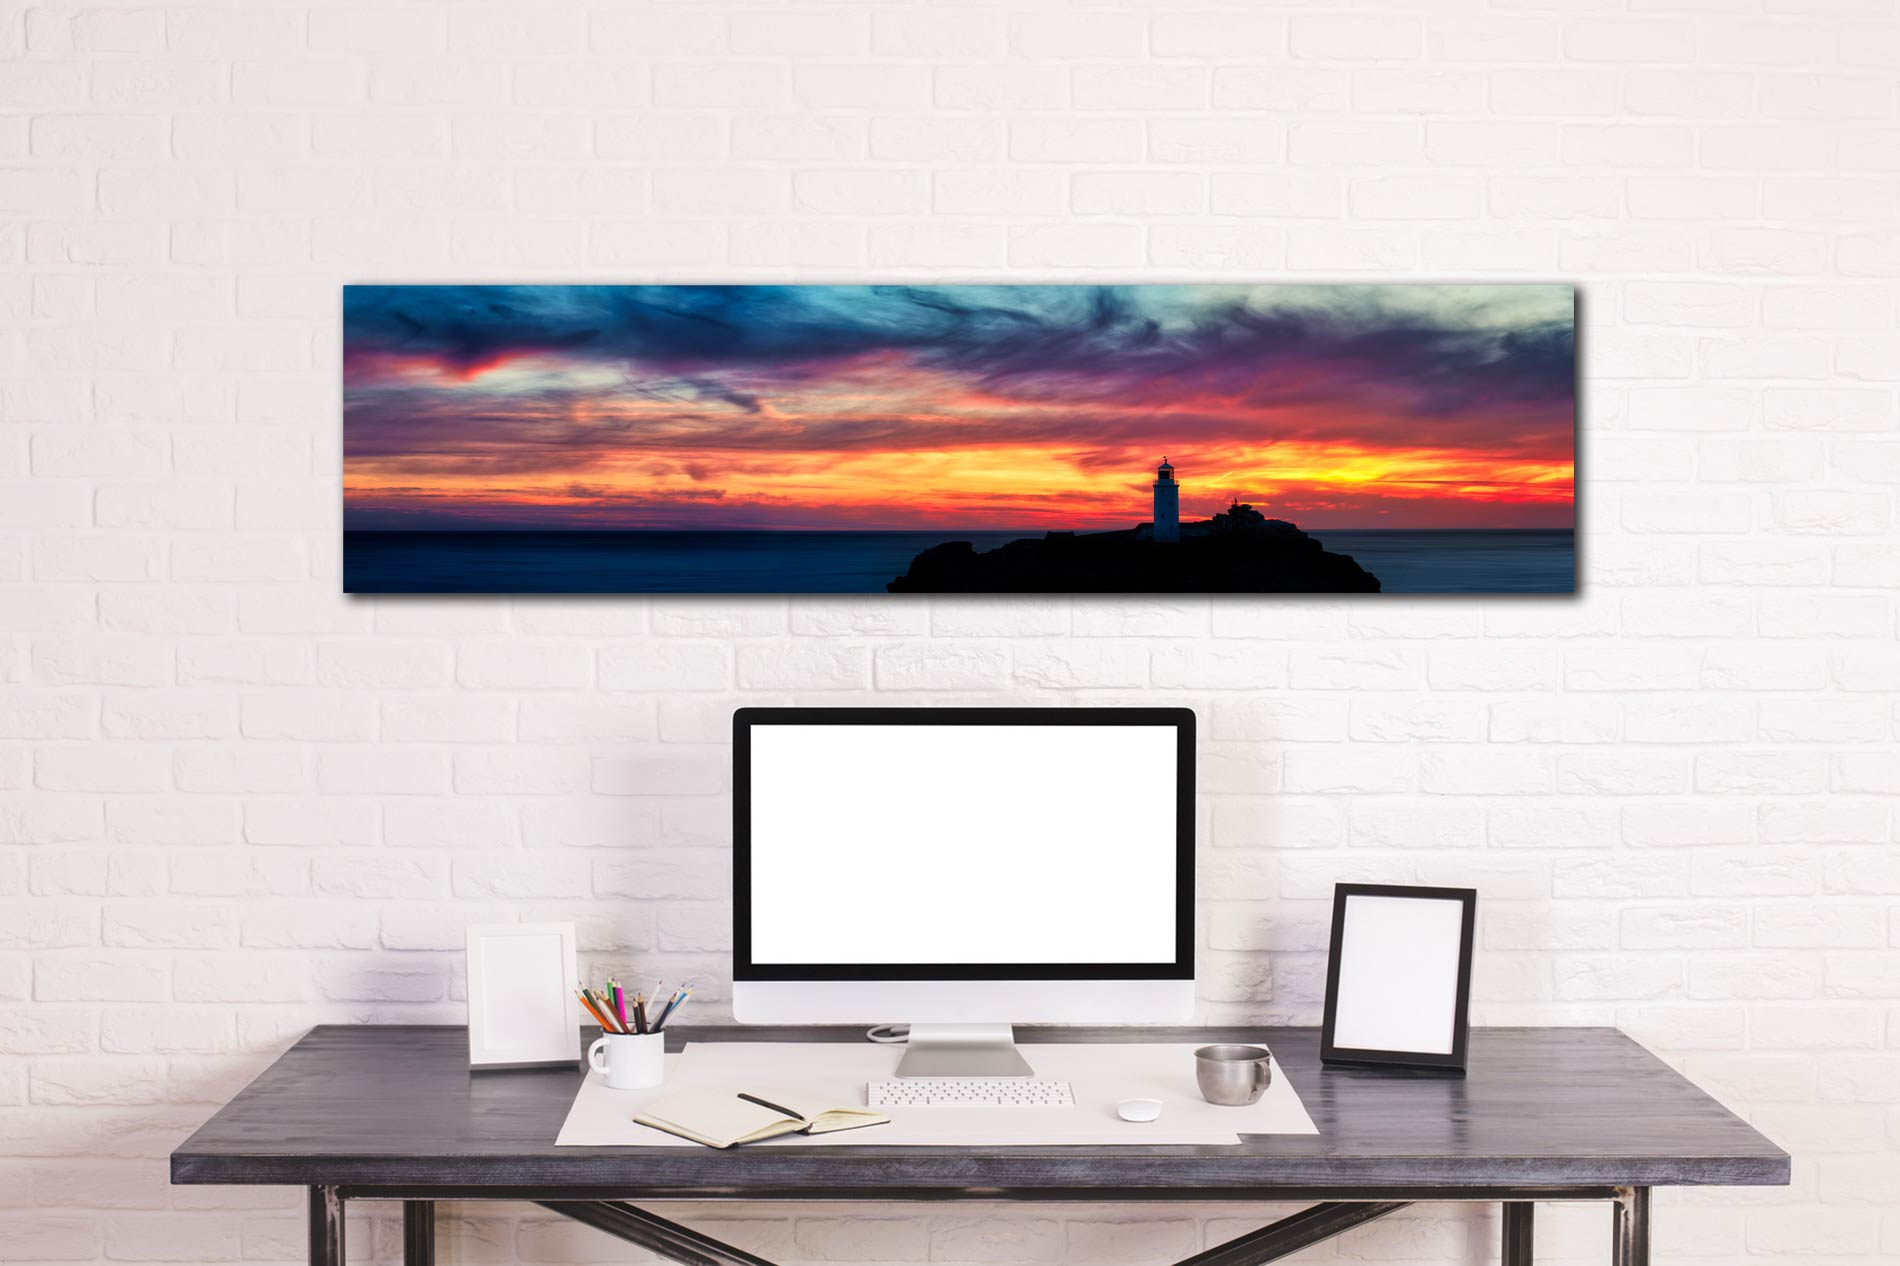 Dusk Skies Over Godrevy Lighthouse - Print Aluminium Backing With Acrylic Glazing on Wall